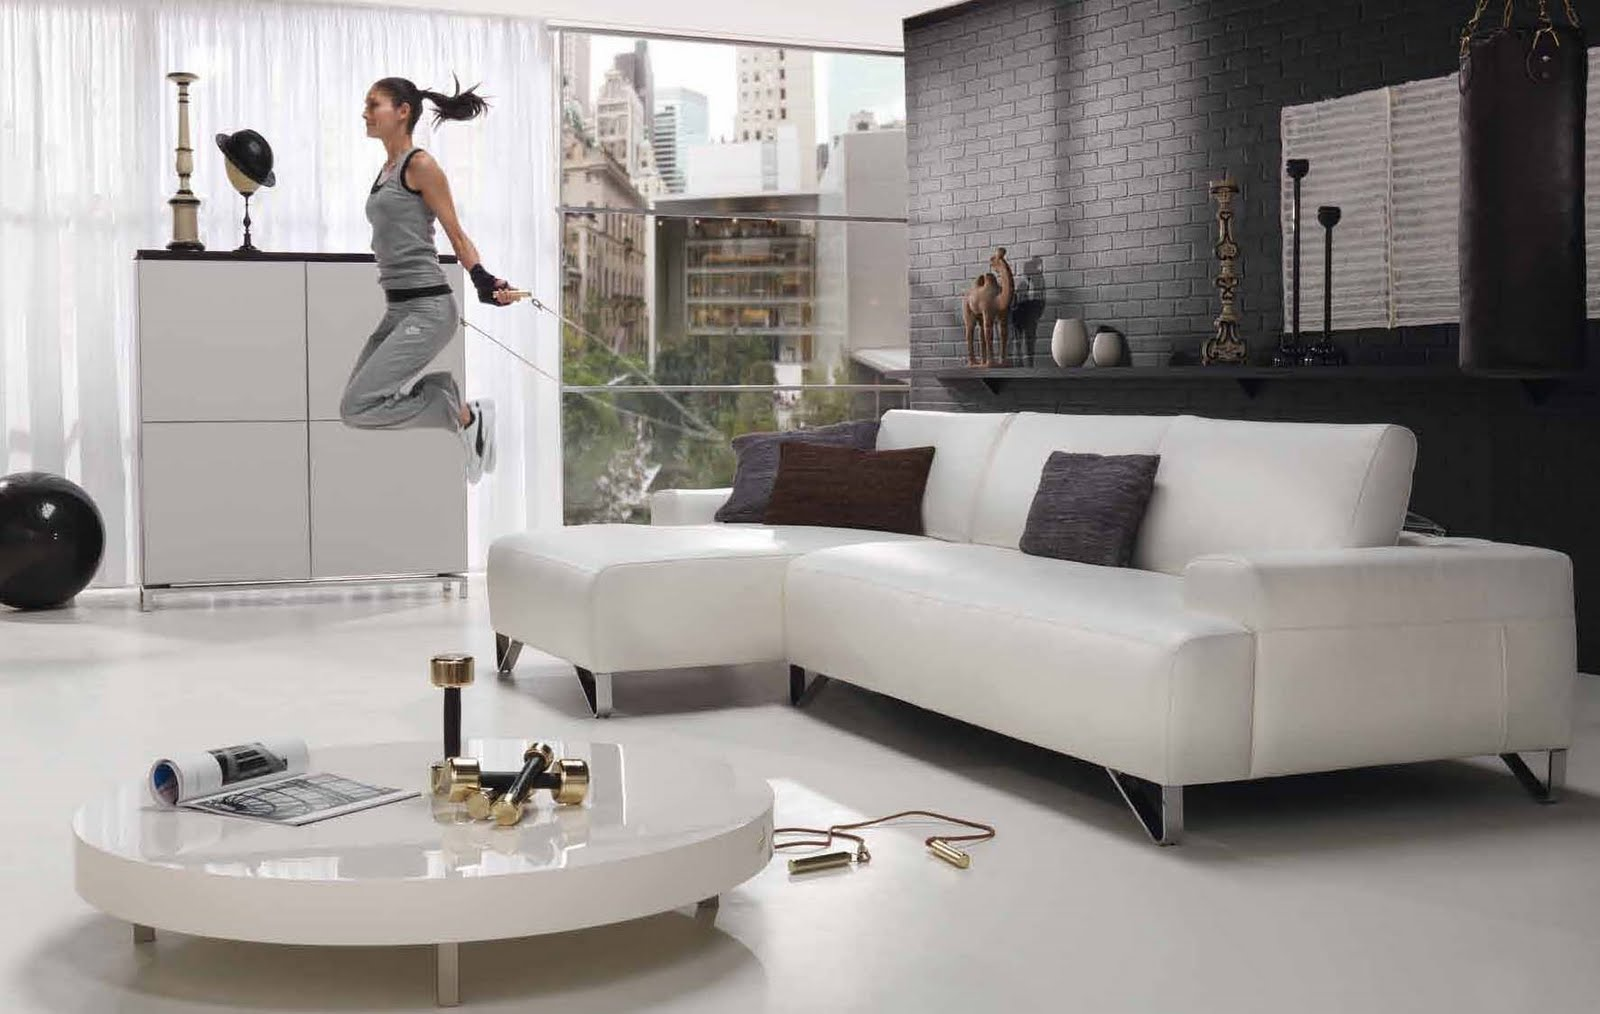 Future house design modern living room interior design styles 2010 by natuzzi for Interior design in living room